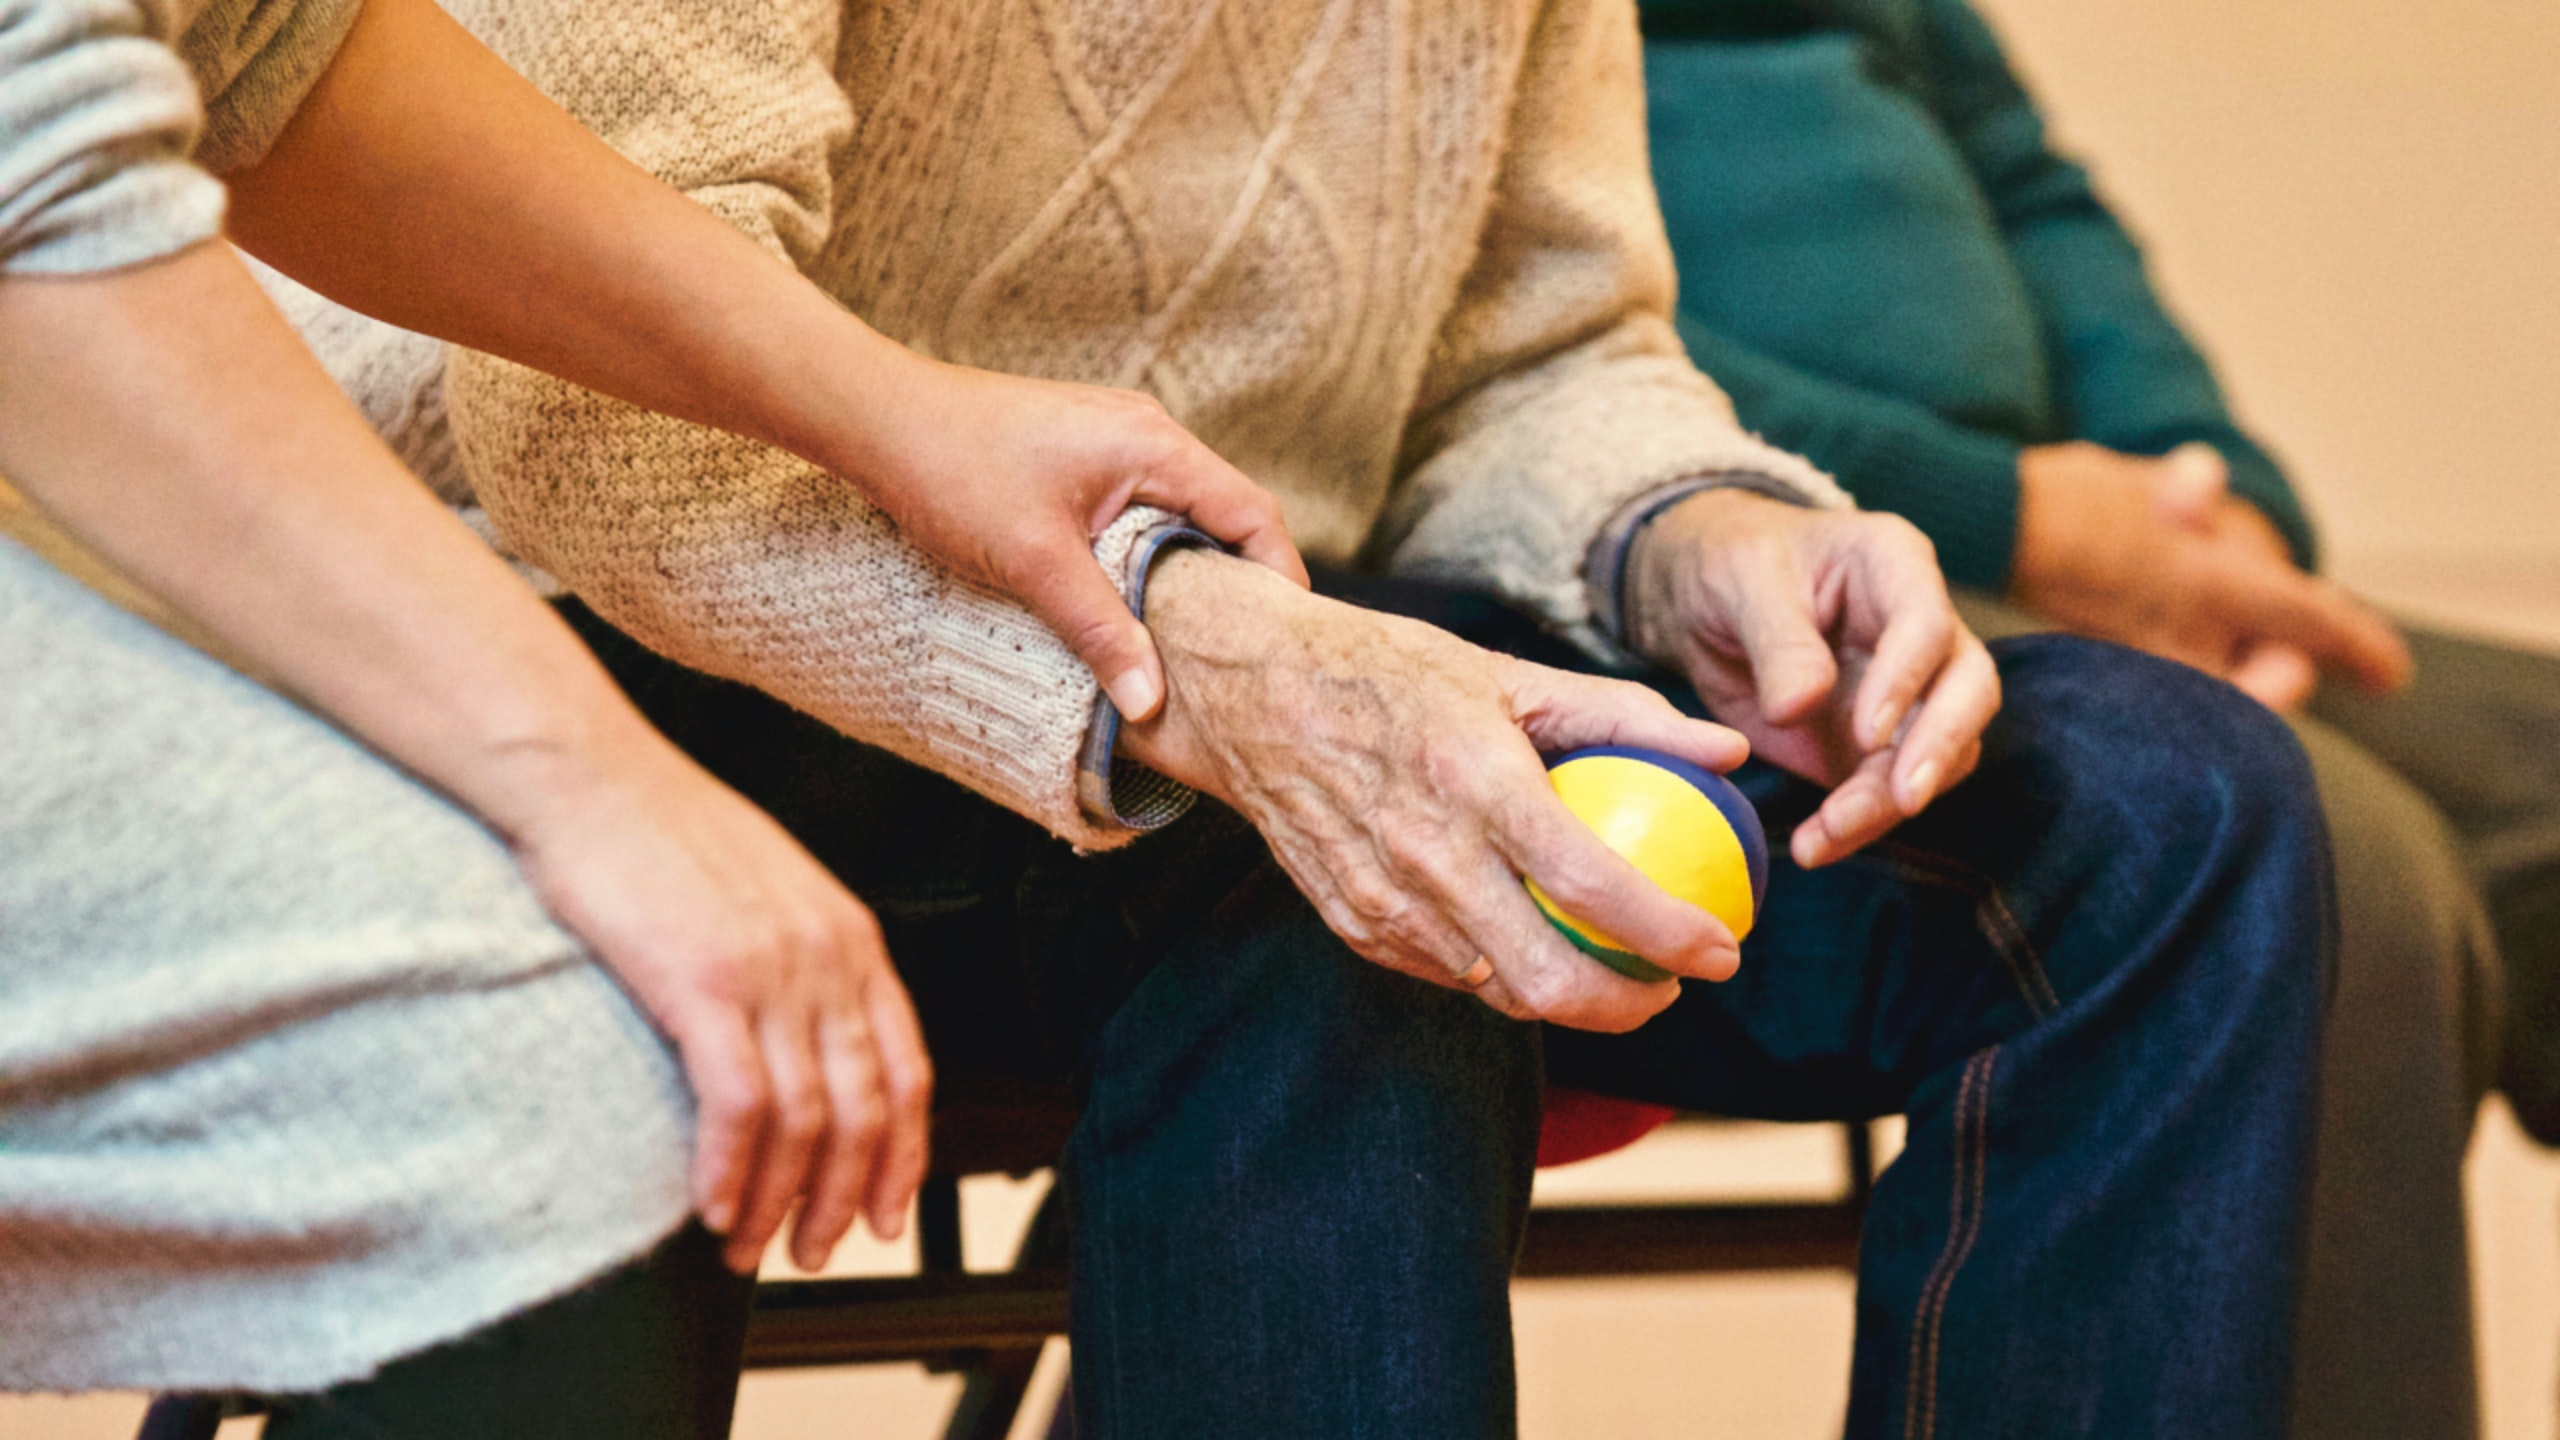 A young female hand holding the wrist of an elderly man as if checking his pulse while the elderly man is squeezing a ball.